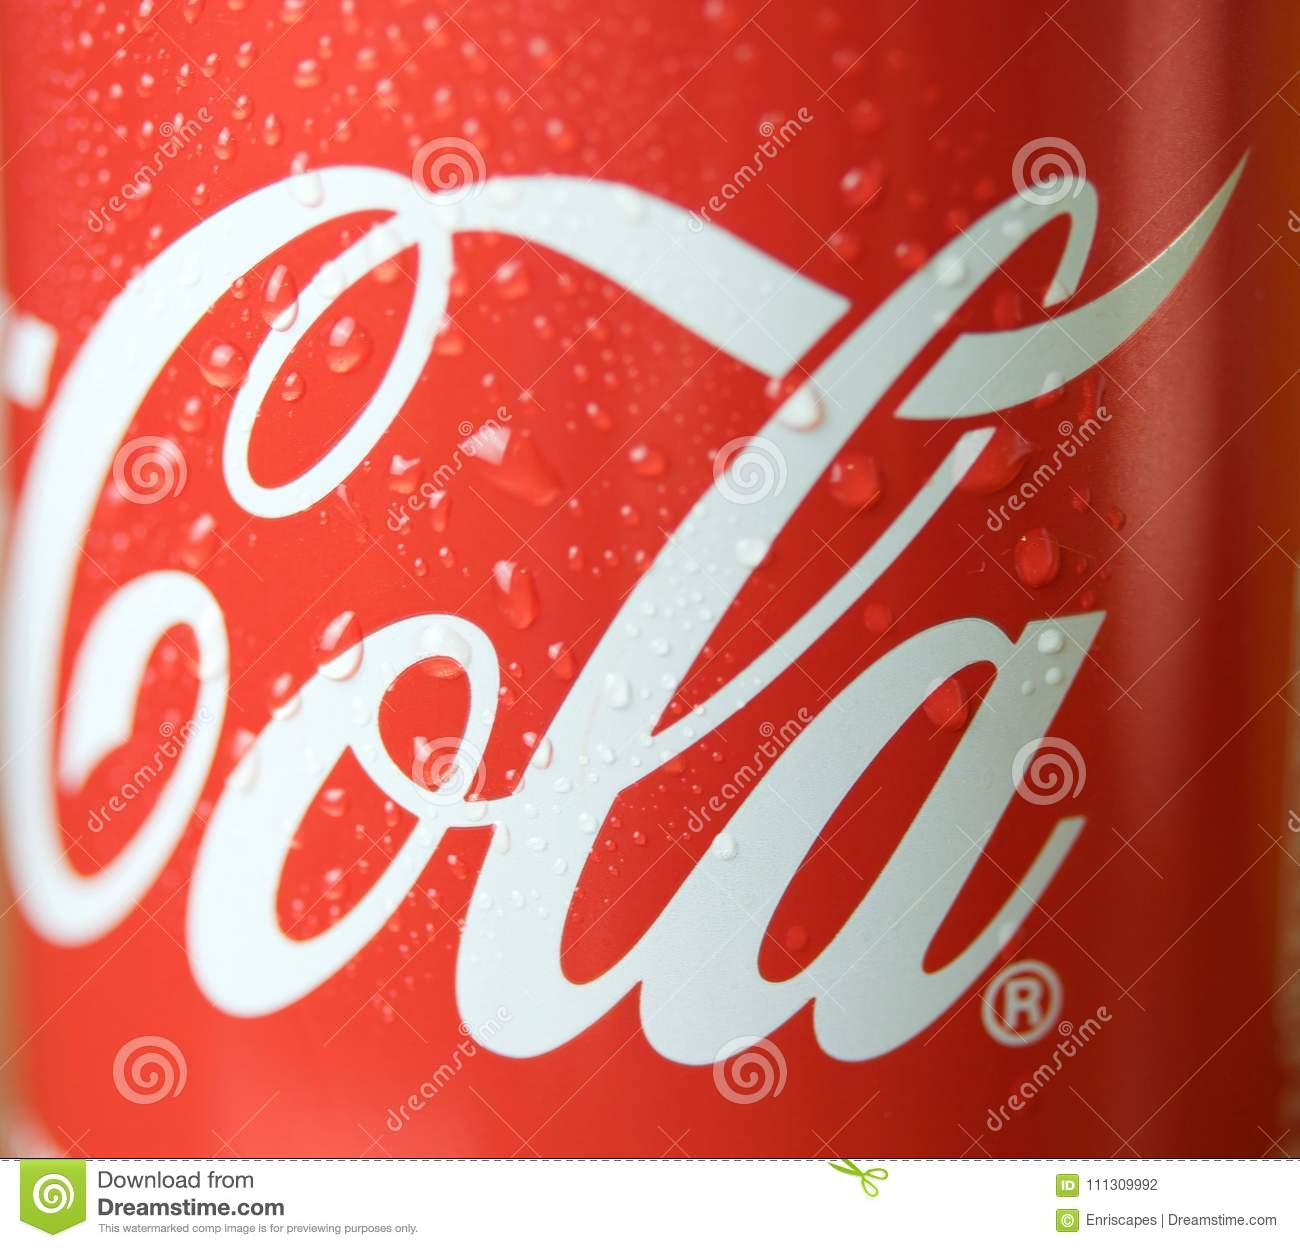 Coca Cola Cans With Drops Editorial Photography. Image Of